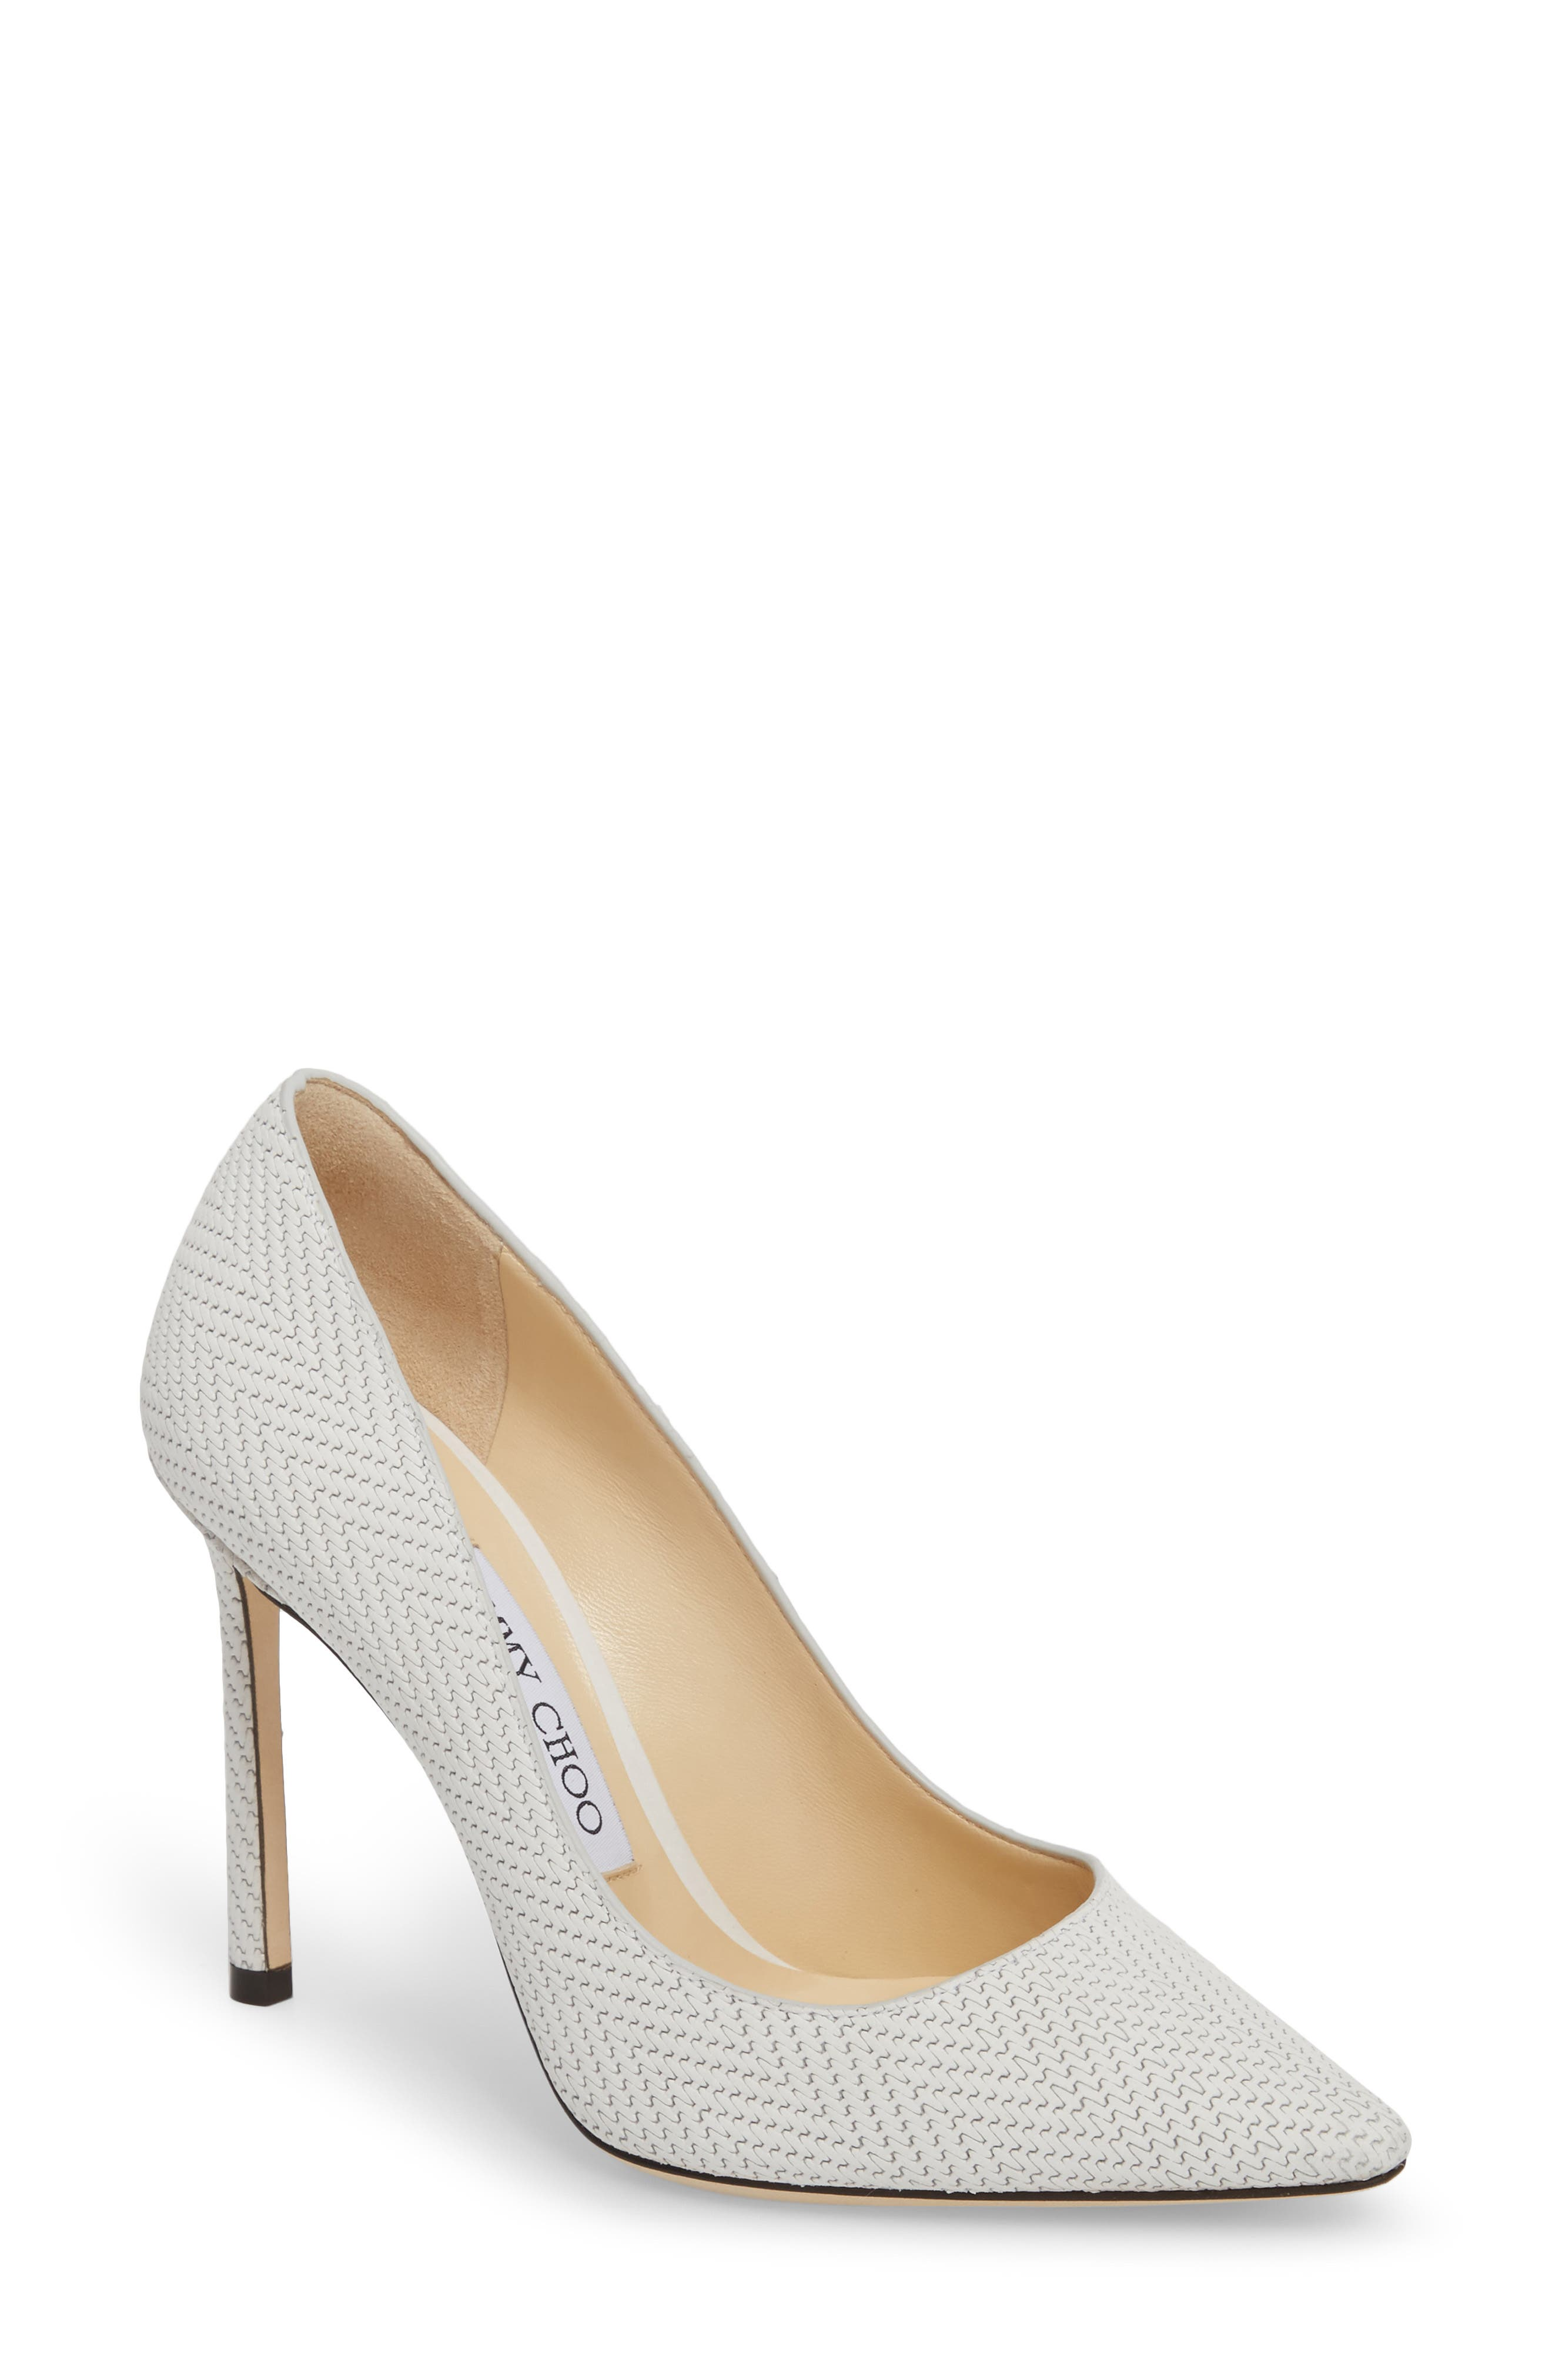 Romy Pointy Toe Pump,                         Main,                         color, 100